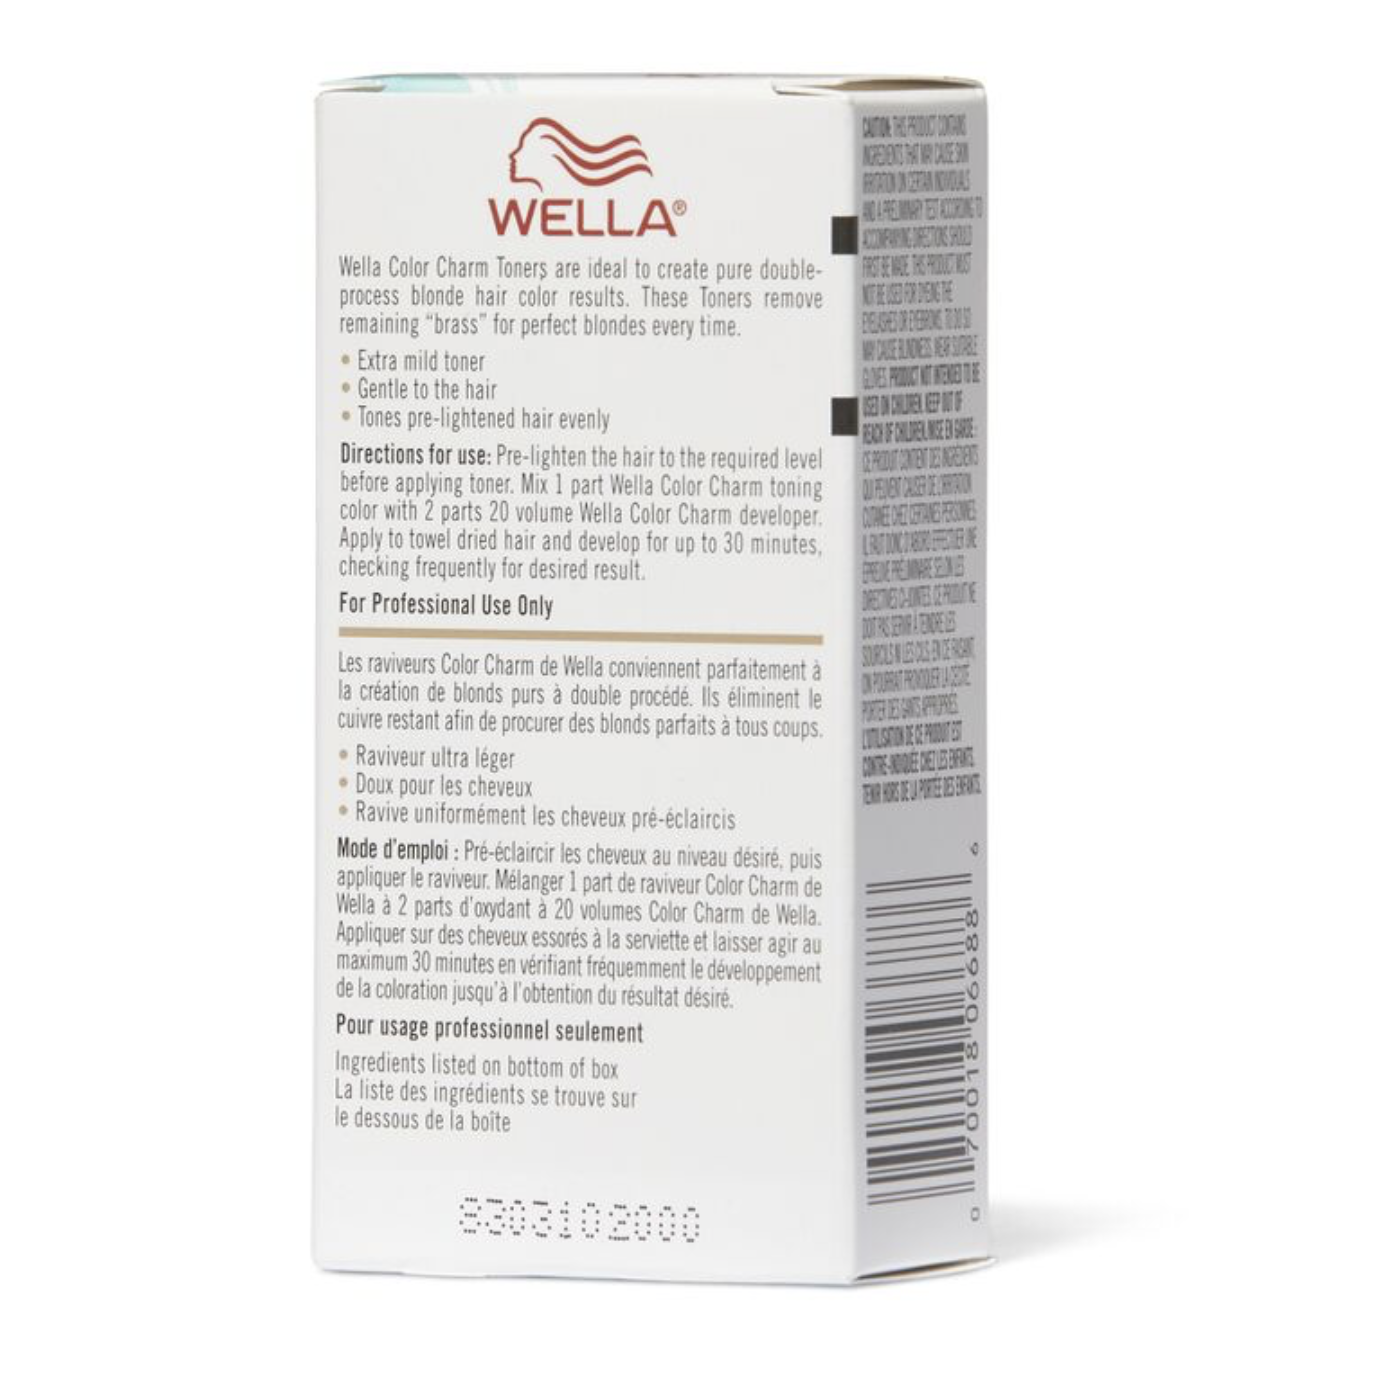 T15 Pale Beige Blonde | 1.4 oz / 42ml | WELLA PROFESSIONAL | SHSalons.com